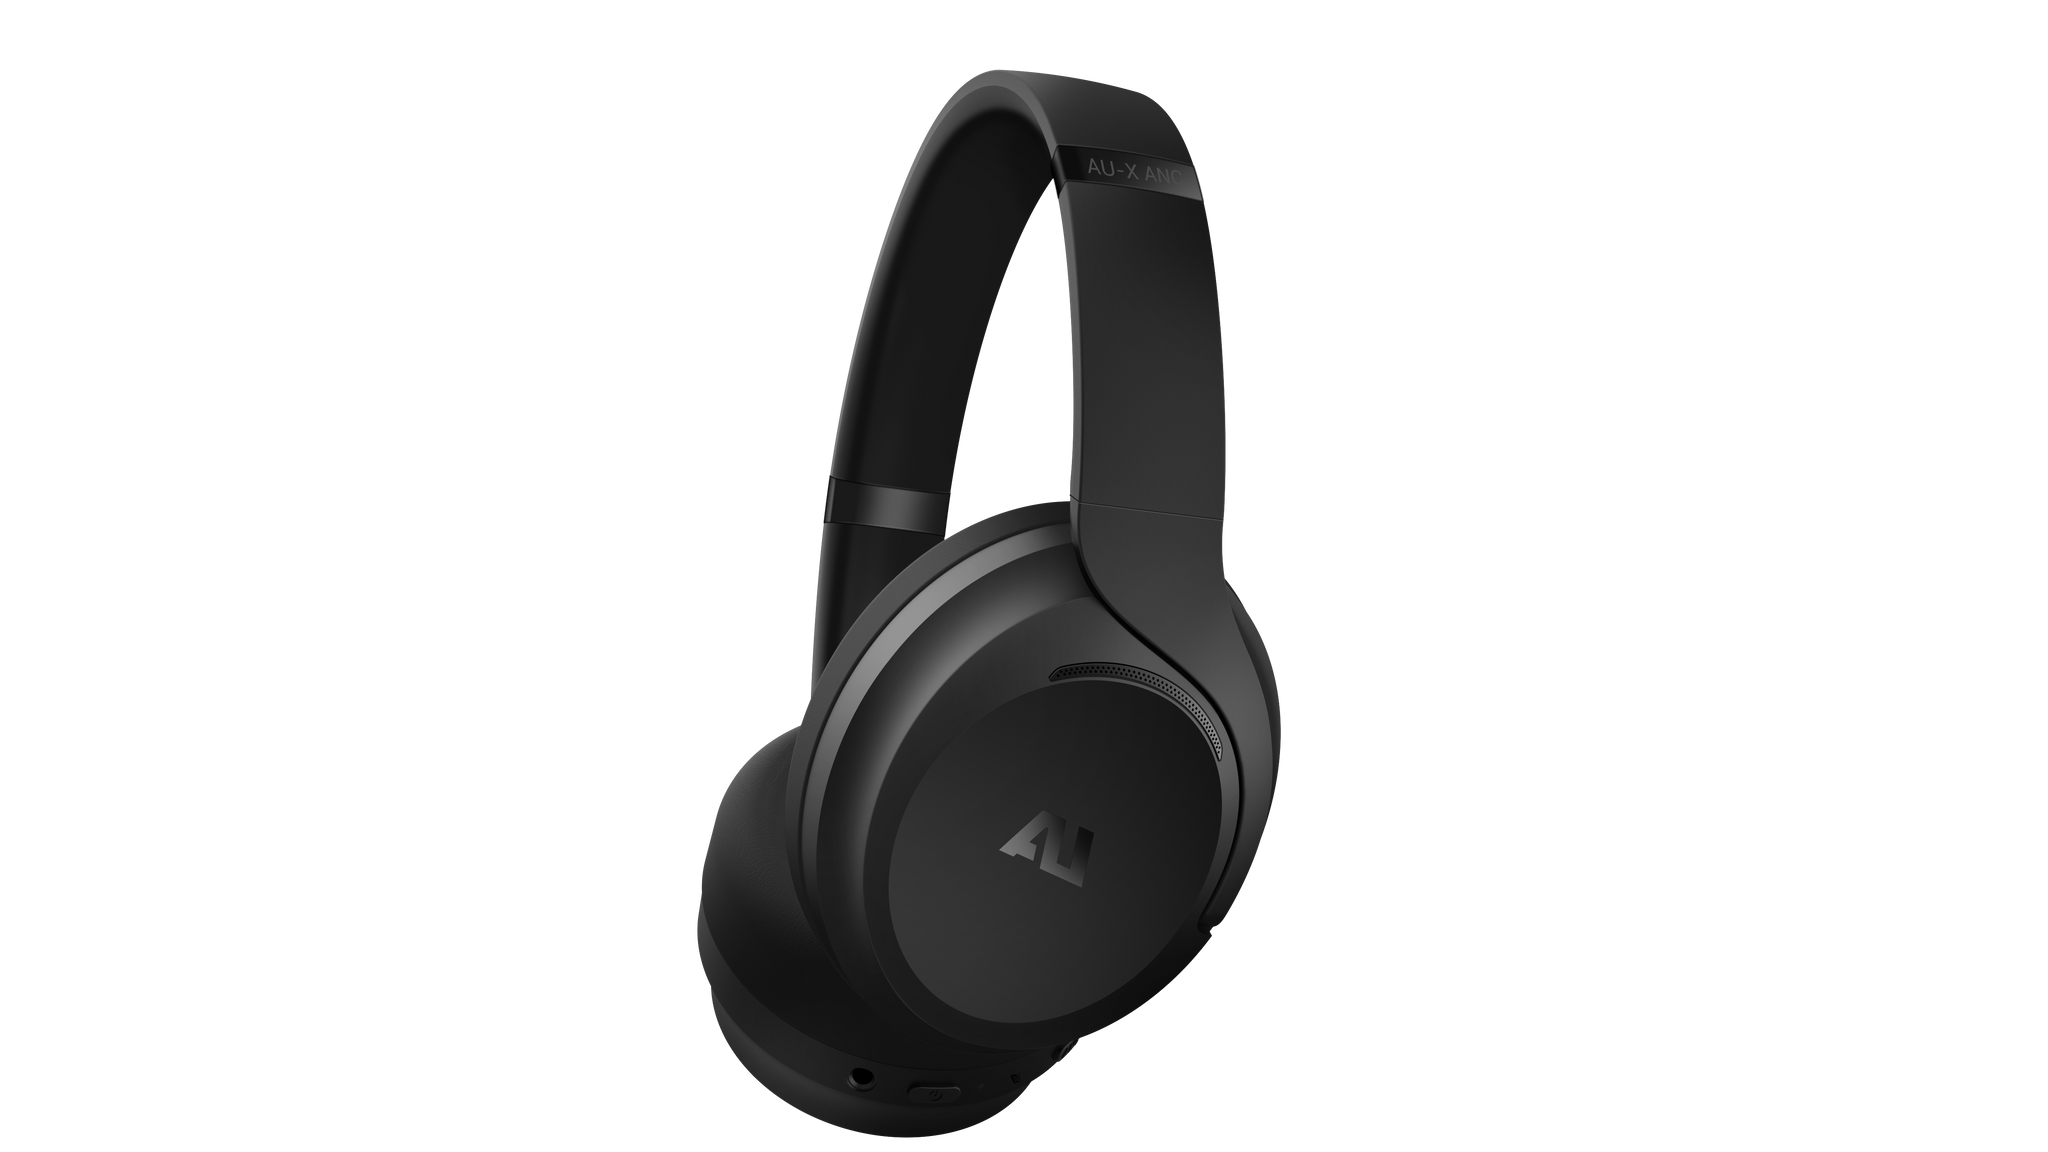 AU-X ANC | Over-Ear Wireless Noise Canceling Headphone